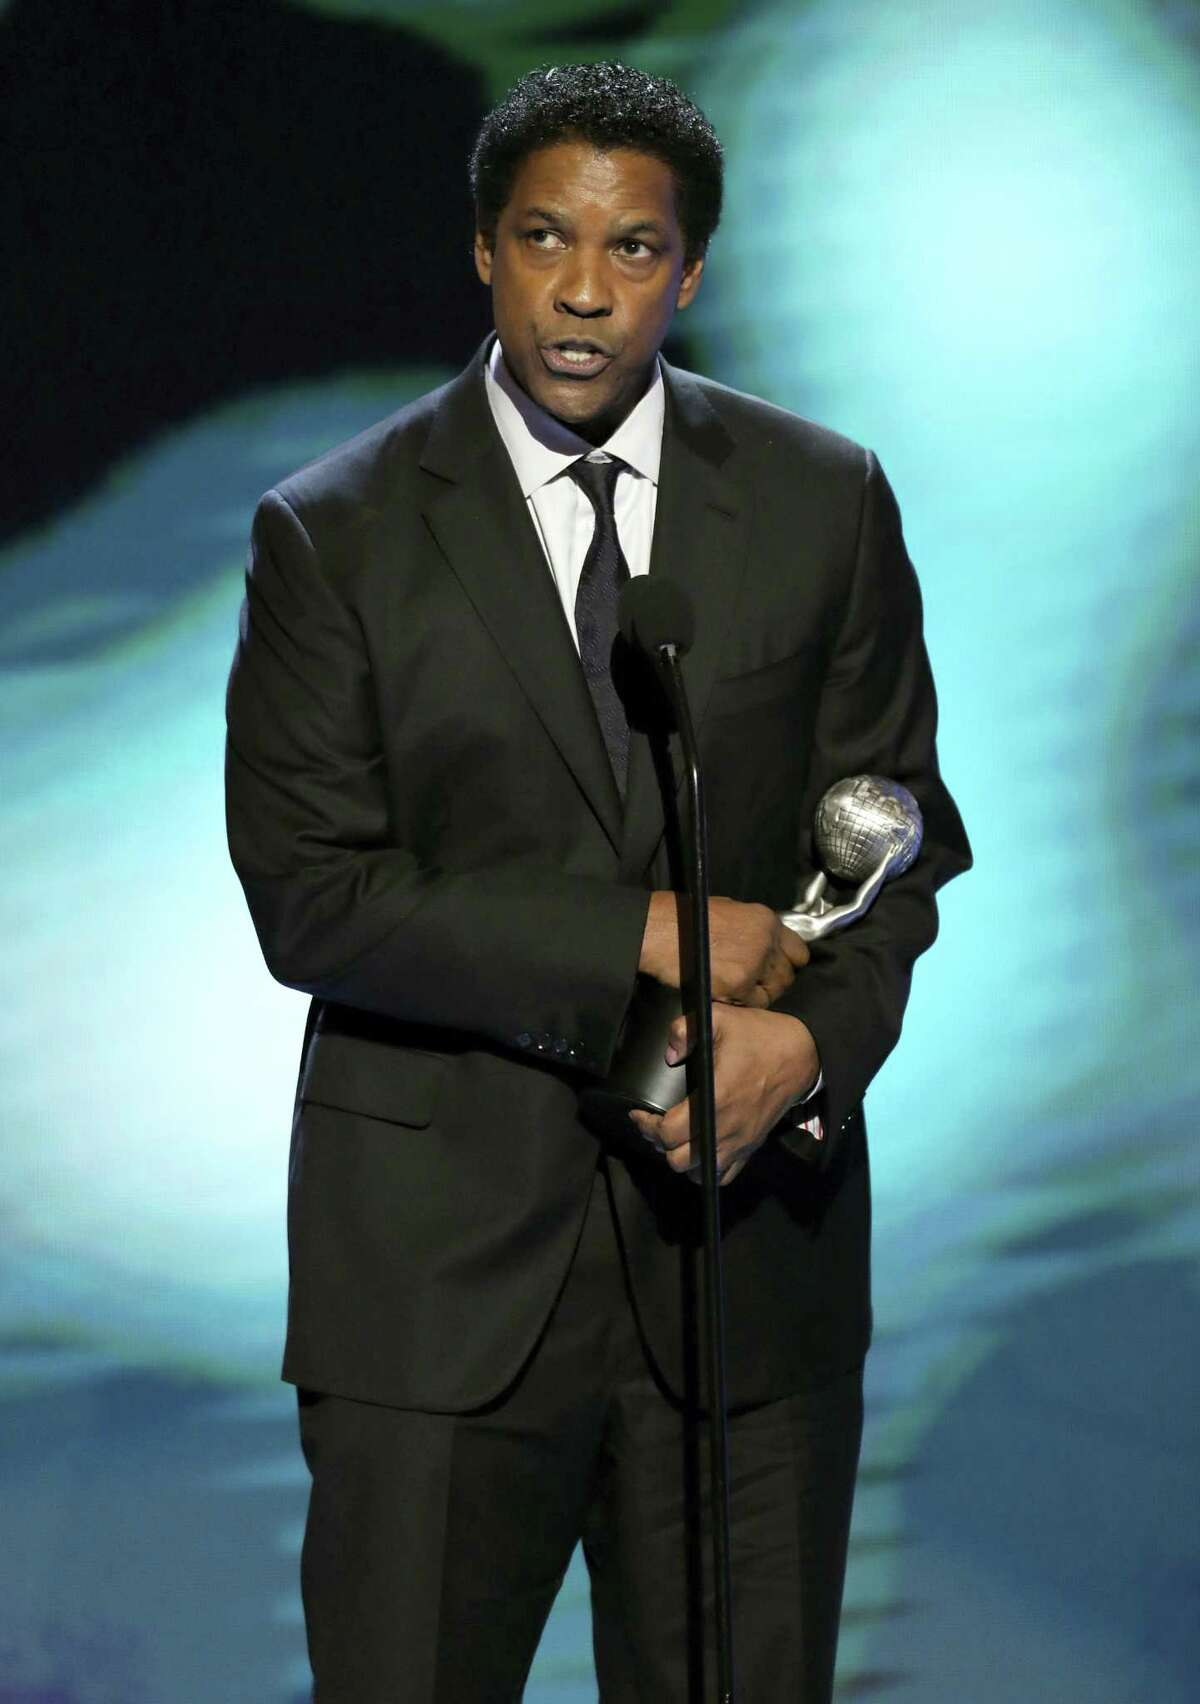 """Denzel Washington accepts the award for outstanding actor in a motion picture for """"Fences"""" at the 48th annual NAACP Image Awards at the Pasadena Civic Auditorium on Feb. 11, 2017 in Pasadena, Calif."""